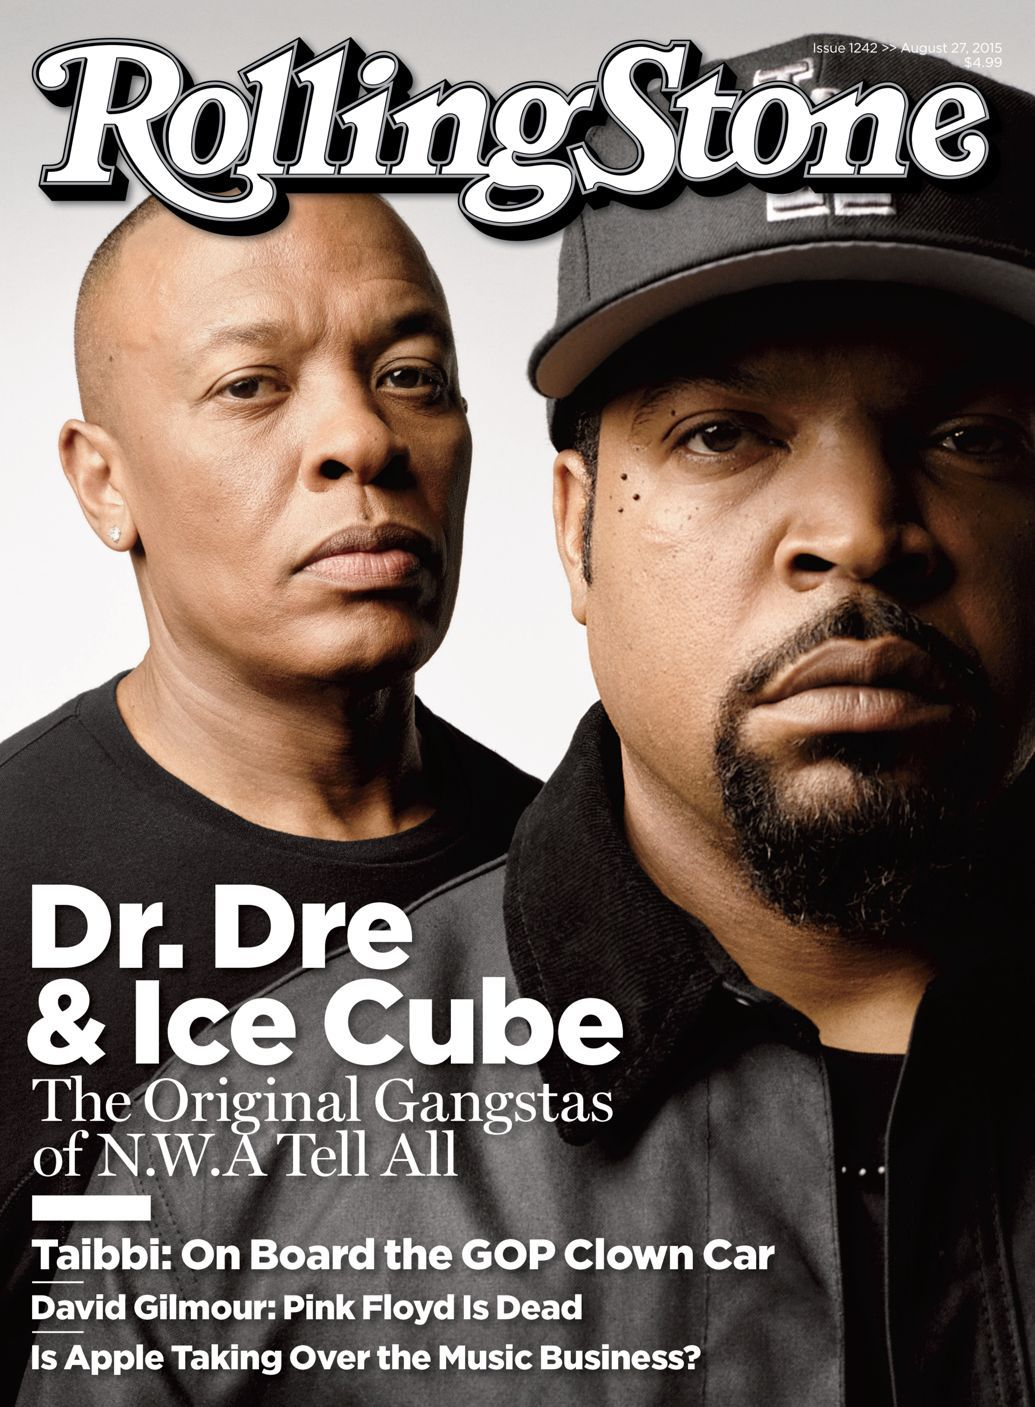 Ice Cube Cover Photo Ideal dr. dre, ice cube address misogyny criticism in rolling stone